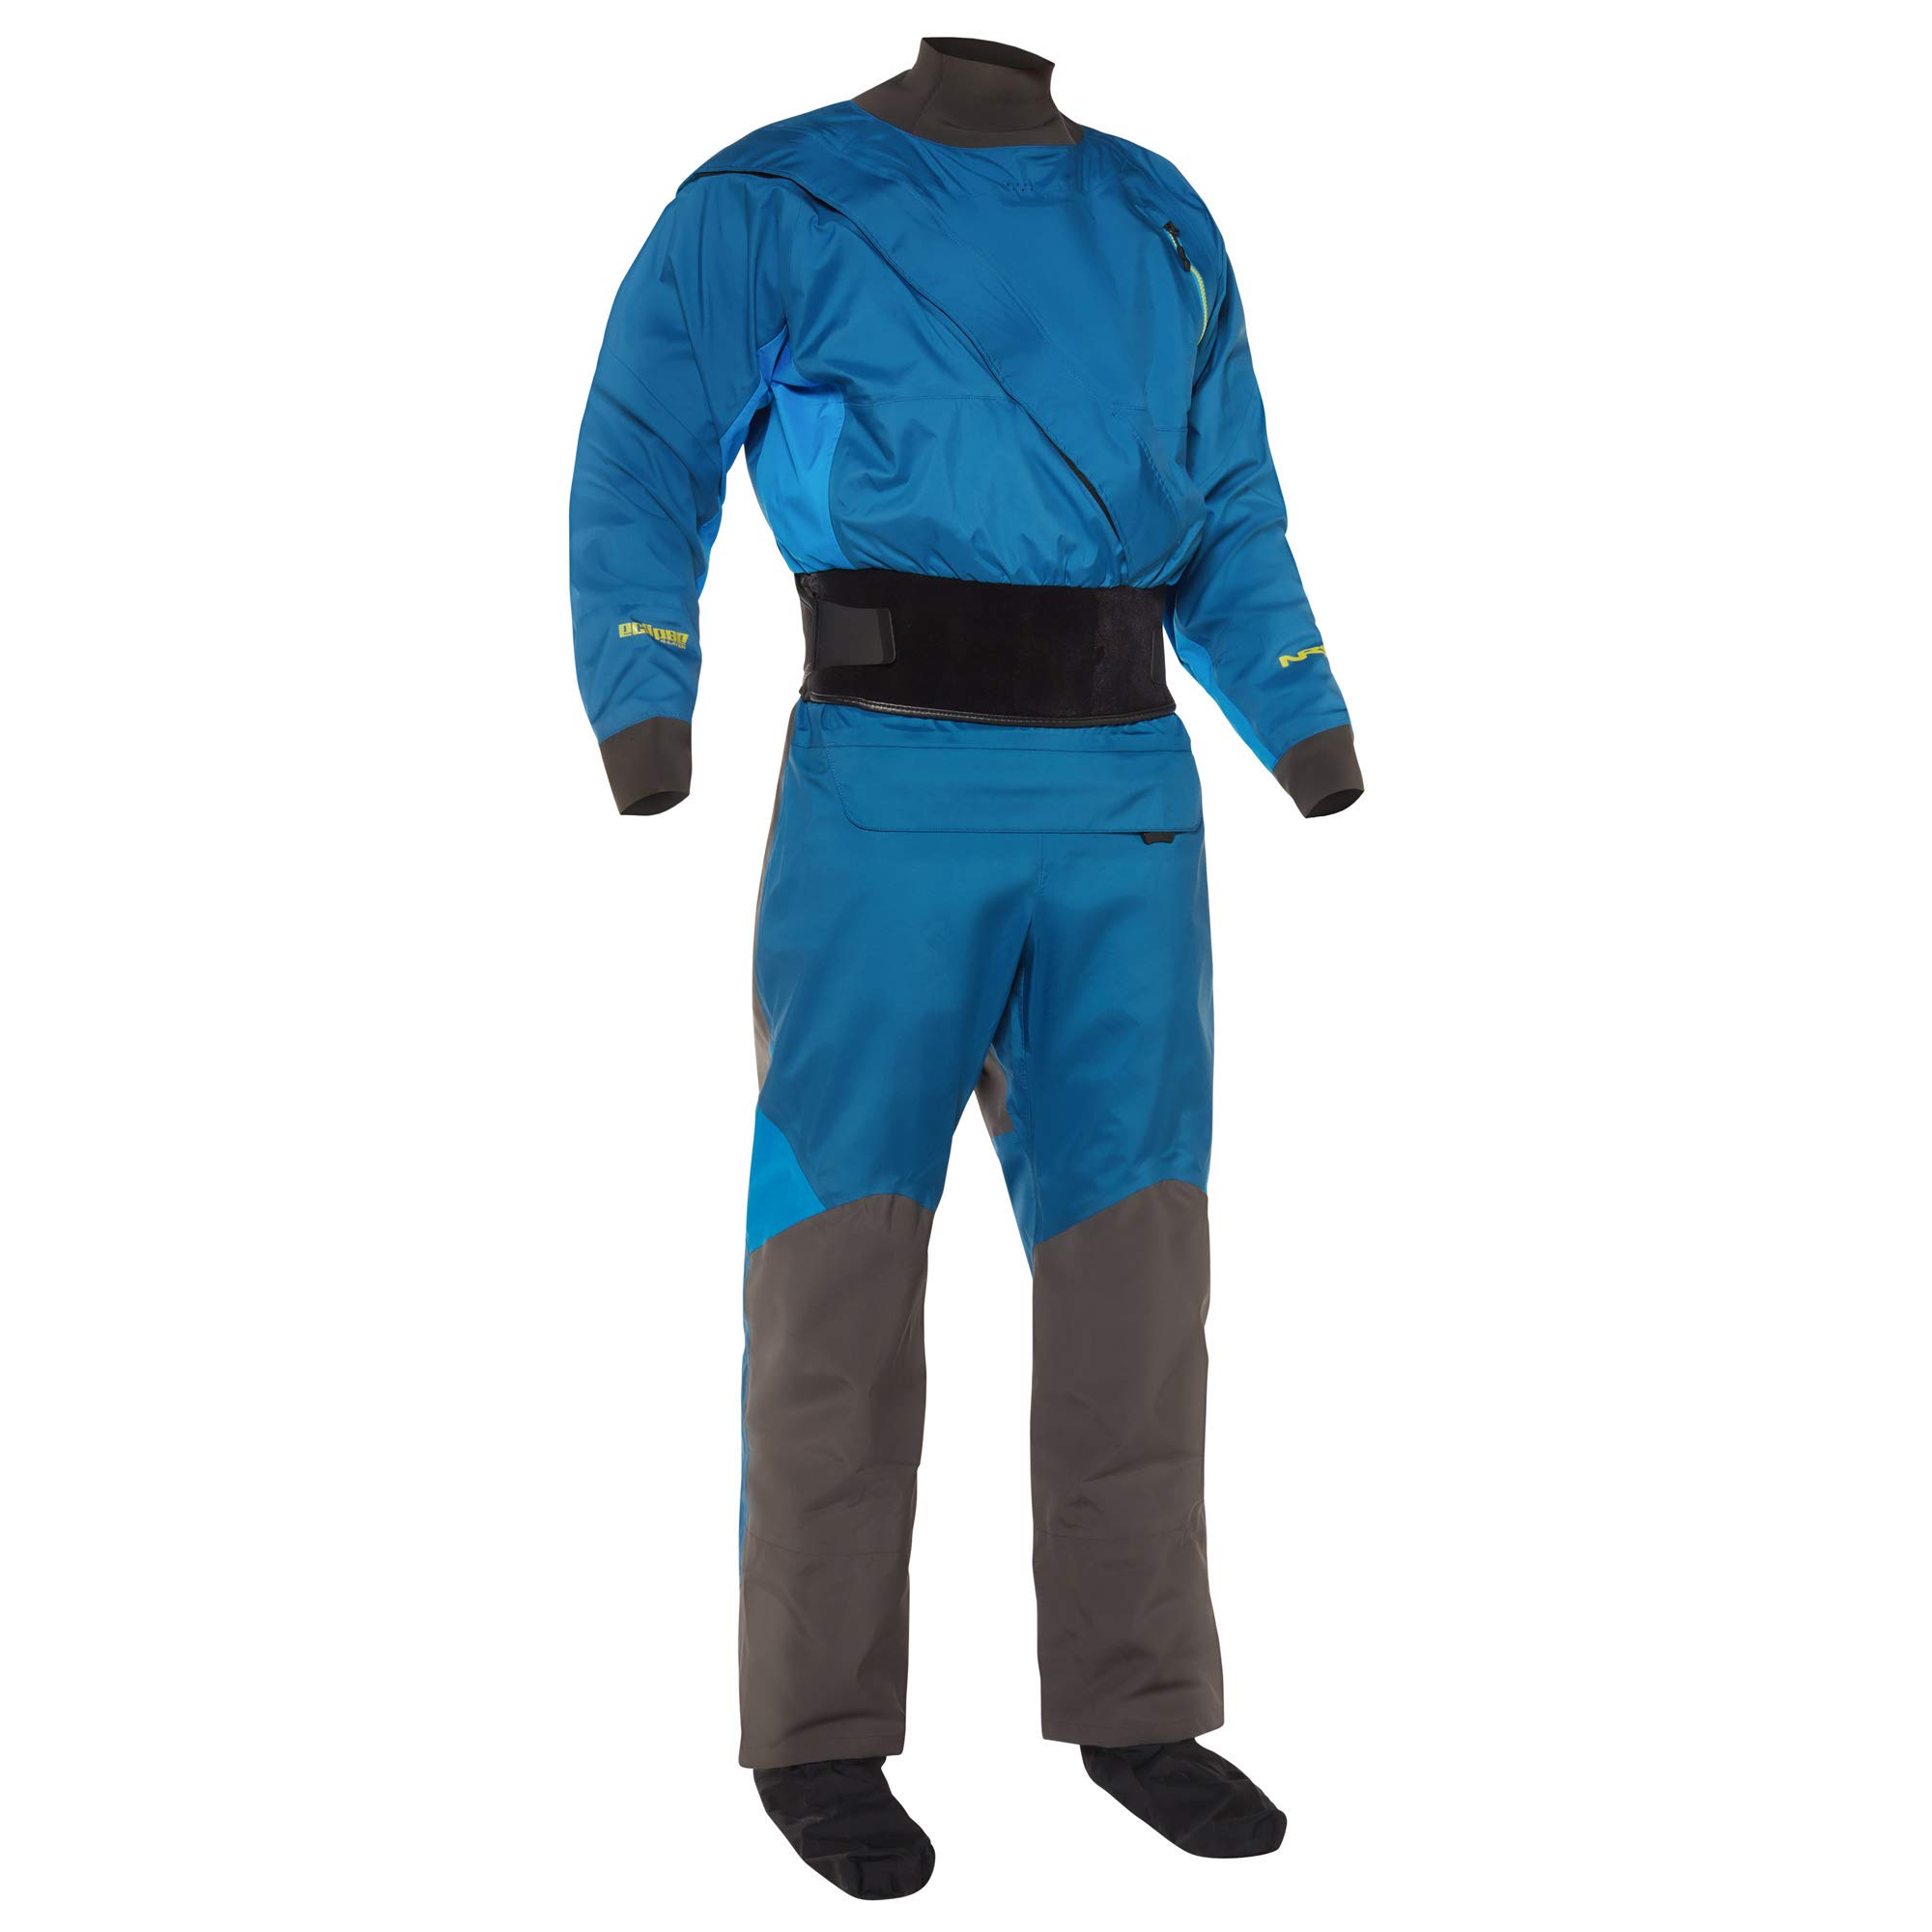 NRS Crux Drysuit - Men's Deep Blue Large